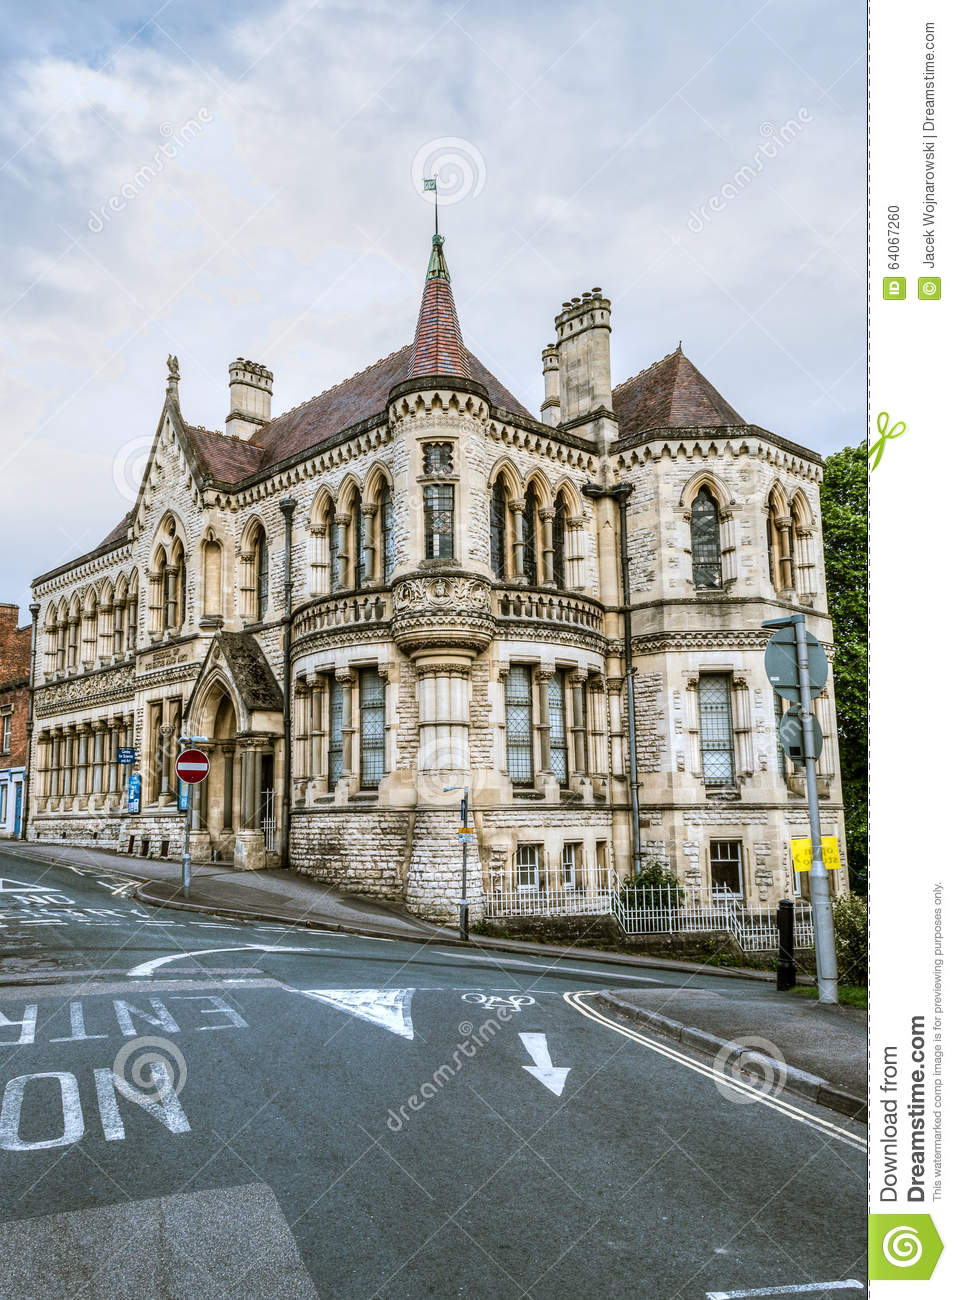 school of science and art victorian architecture in